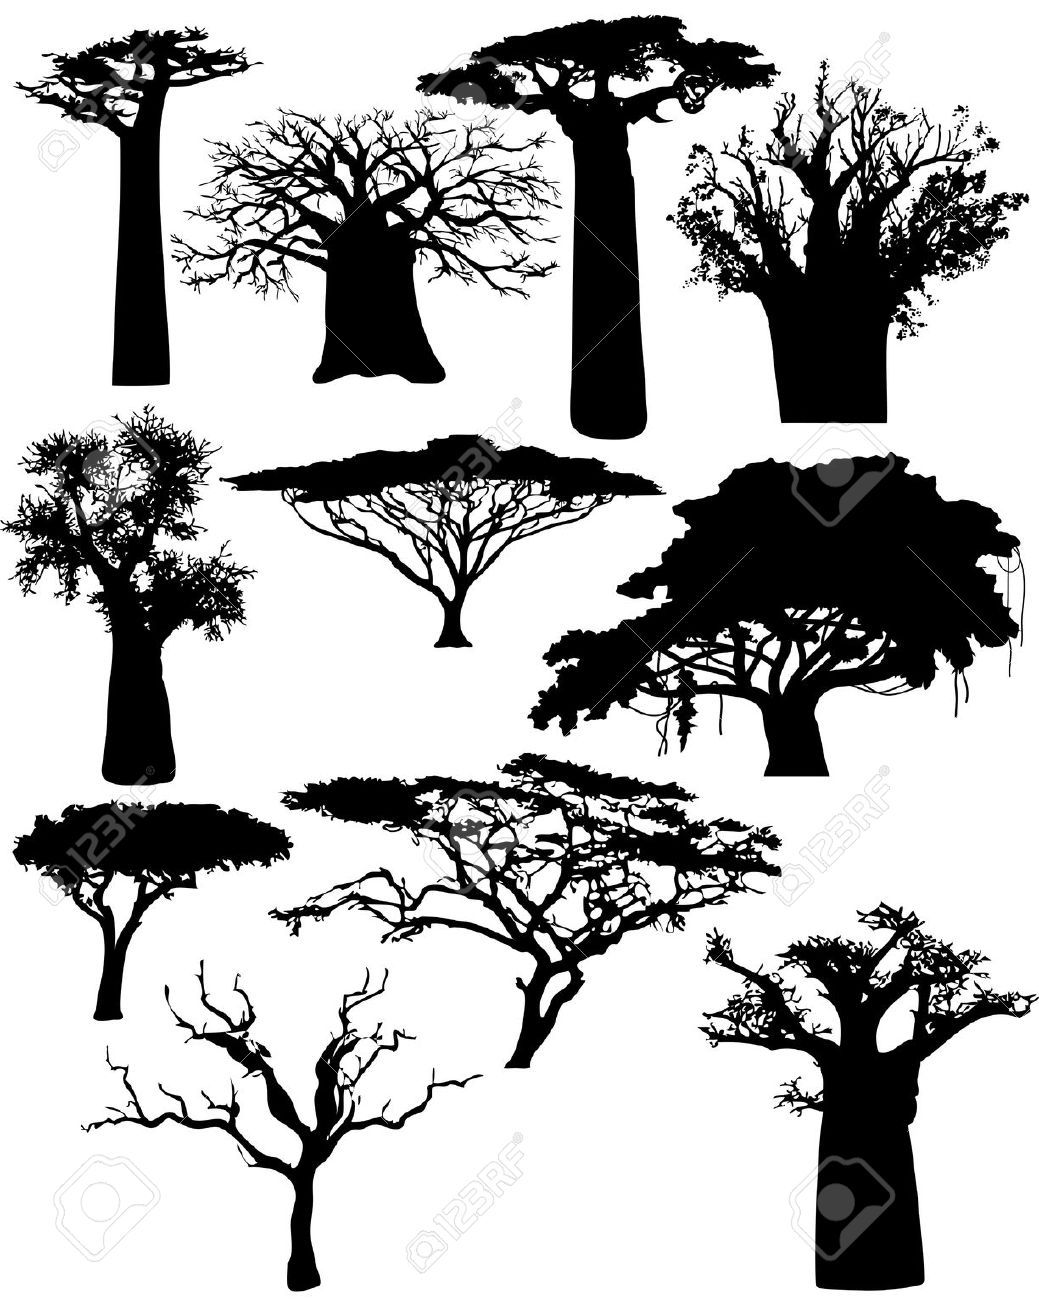 Songbird tattoo created at www mrsite com - Various African Trees And Bushes Vector Stock Vector